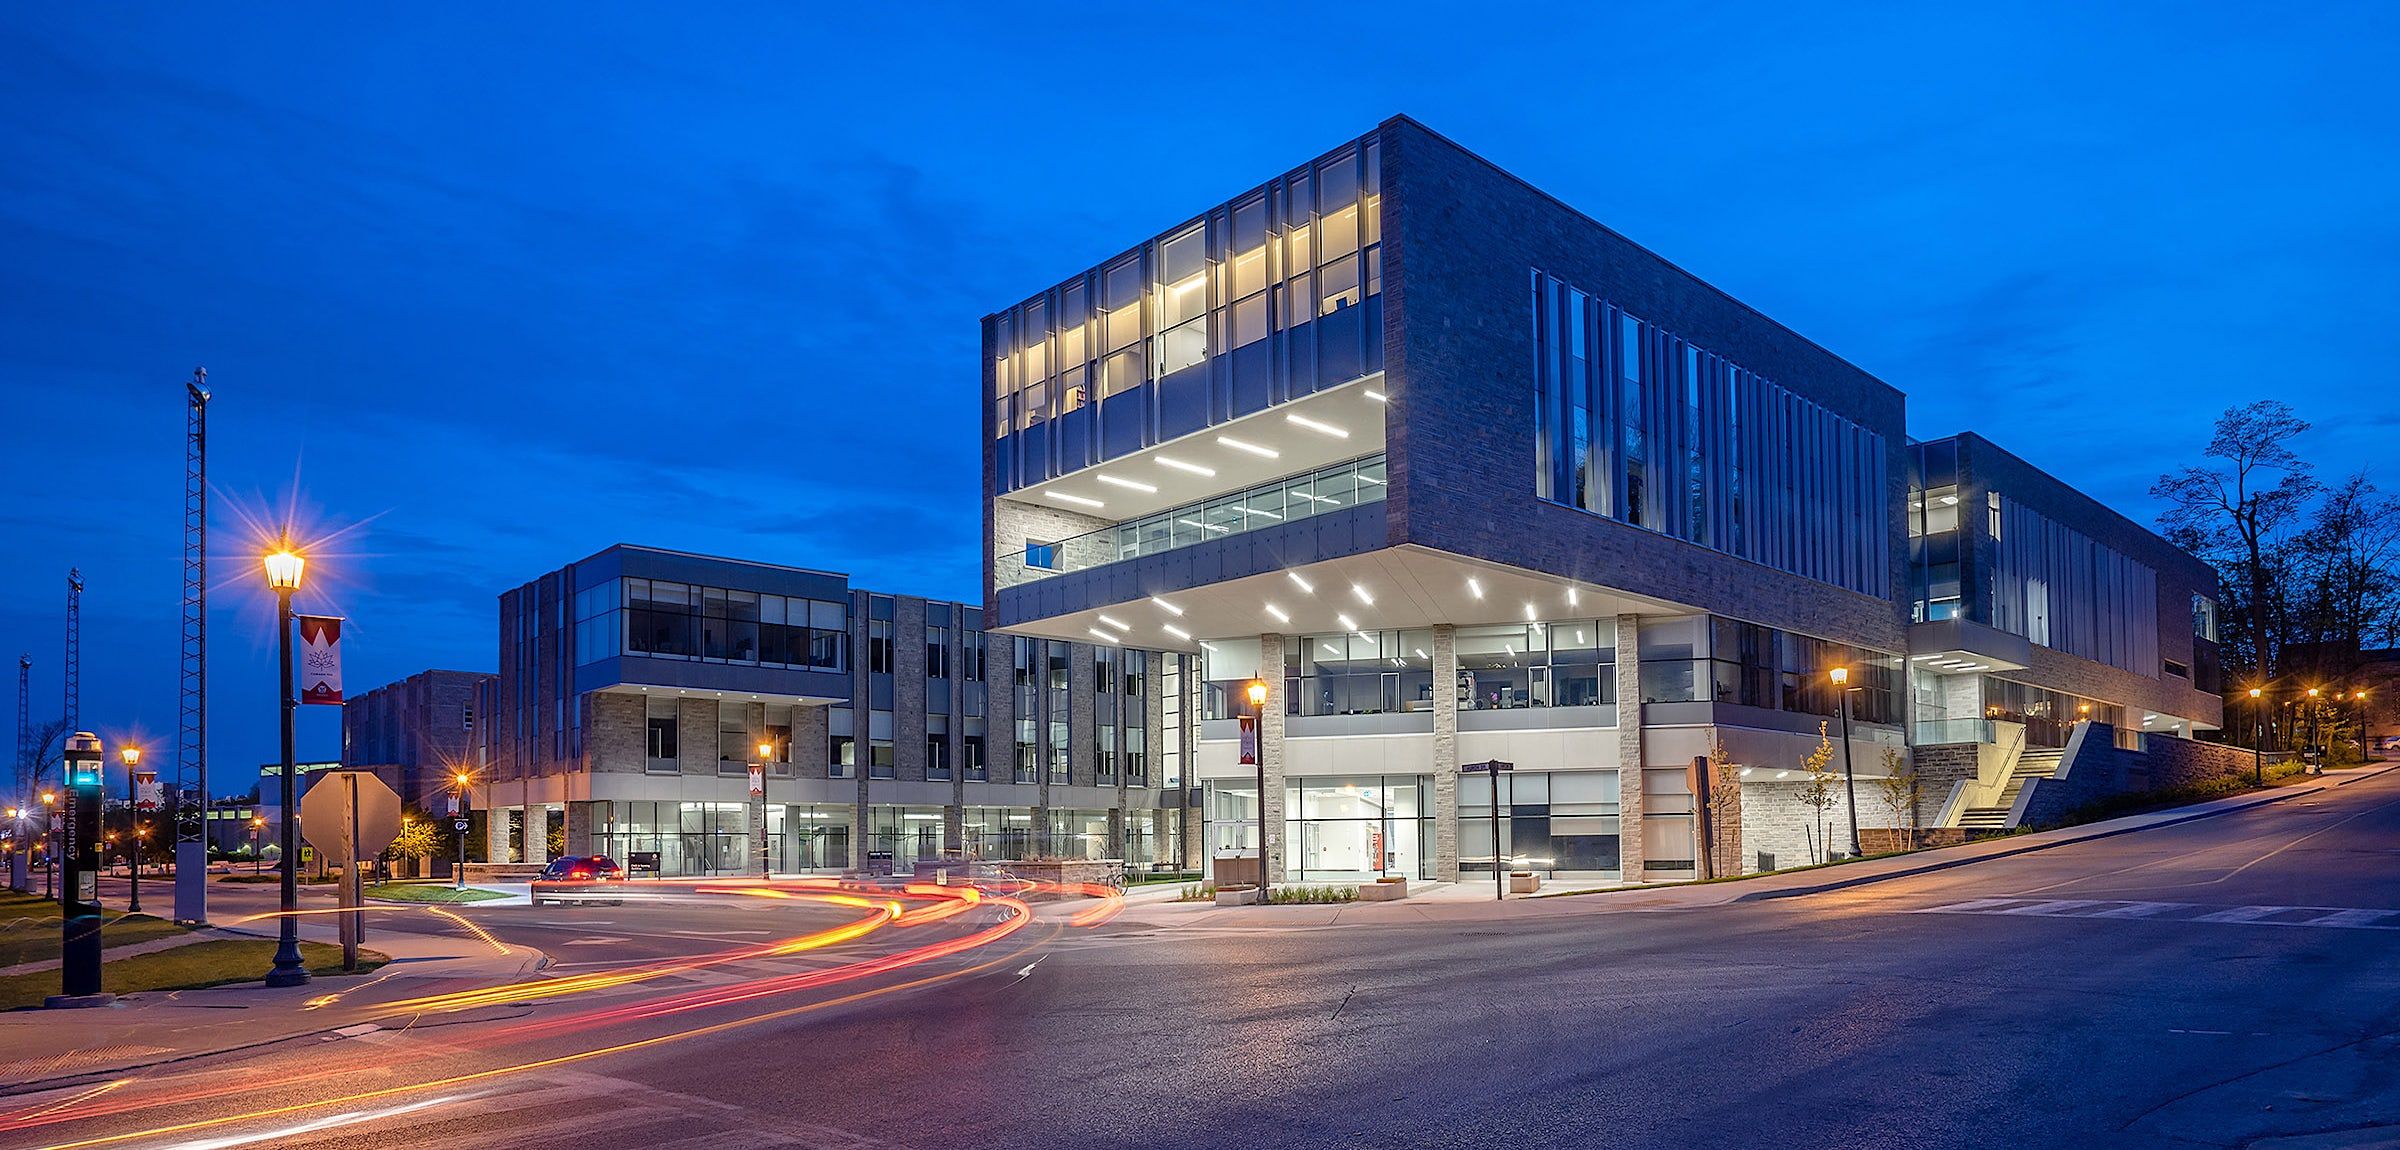 Scott Webb Photography - Architectural Photographer shooting Twilight photos in London Ontario